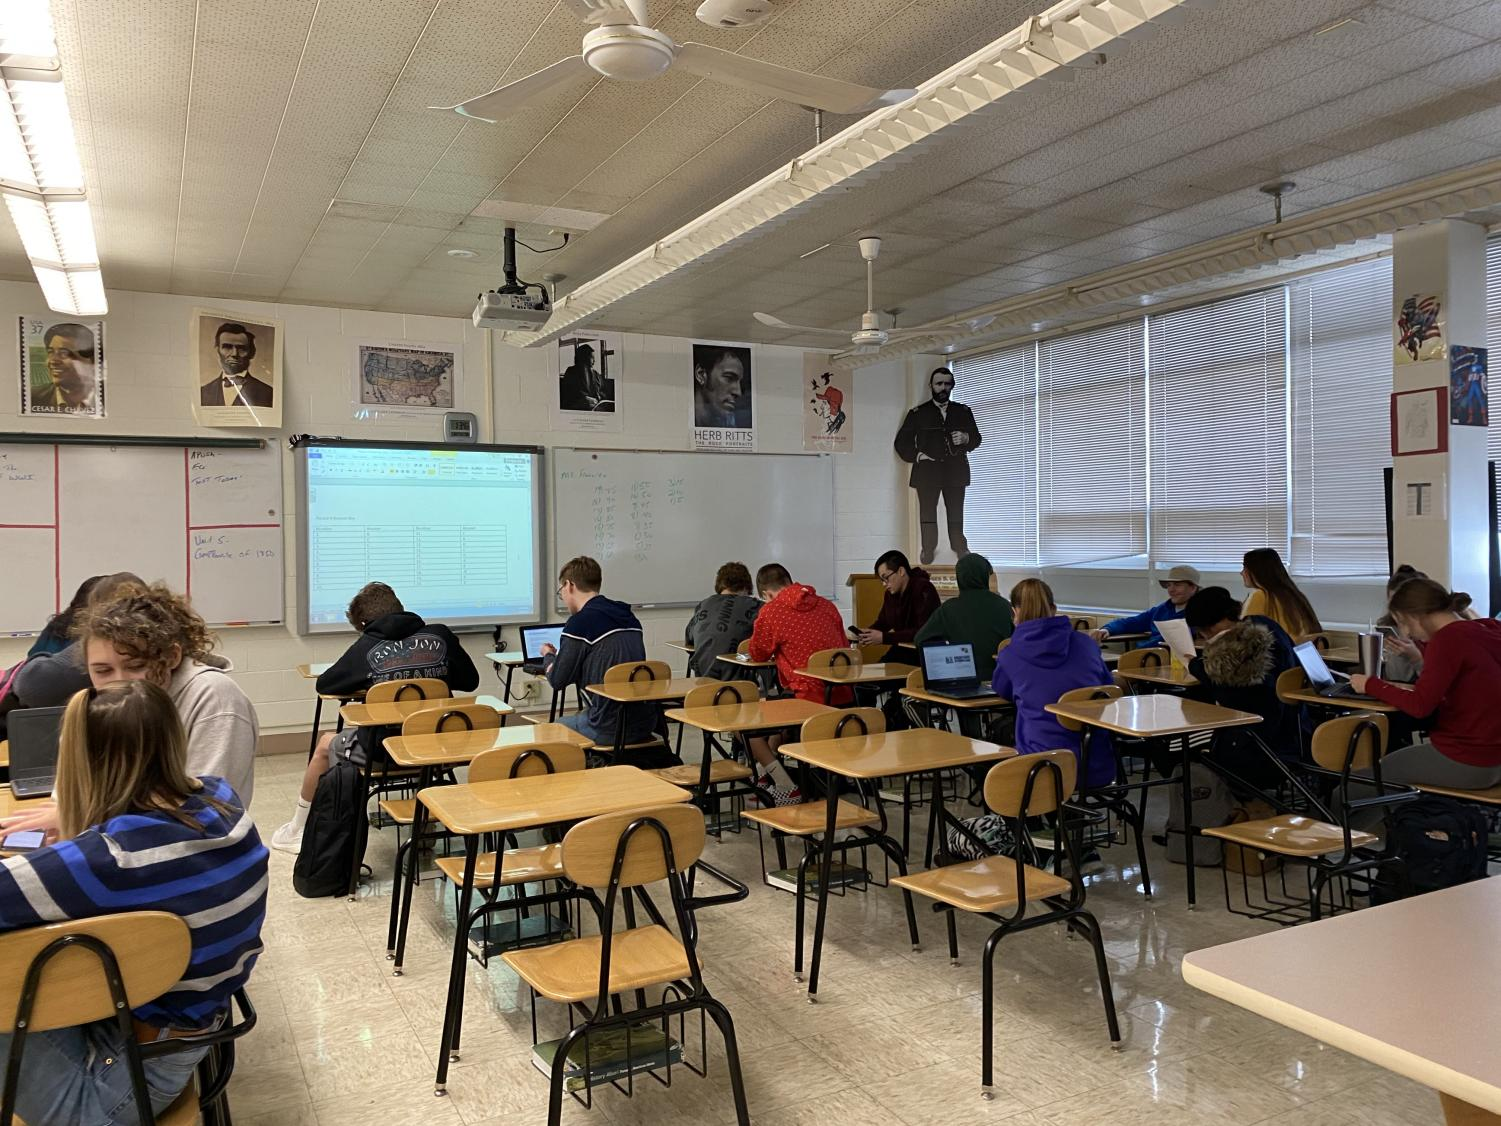 """With the AP exam just months away, Joseph Flahrety's AP US History class finishes a period test. """"The hardest part about taking the period tests is remembering what we learned and then applying it to the multiple choice questions. However, you learn from mistakes and then you know what to study next time,"""" sophomore Abbie Hambleton said."""